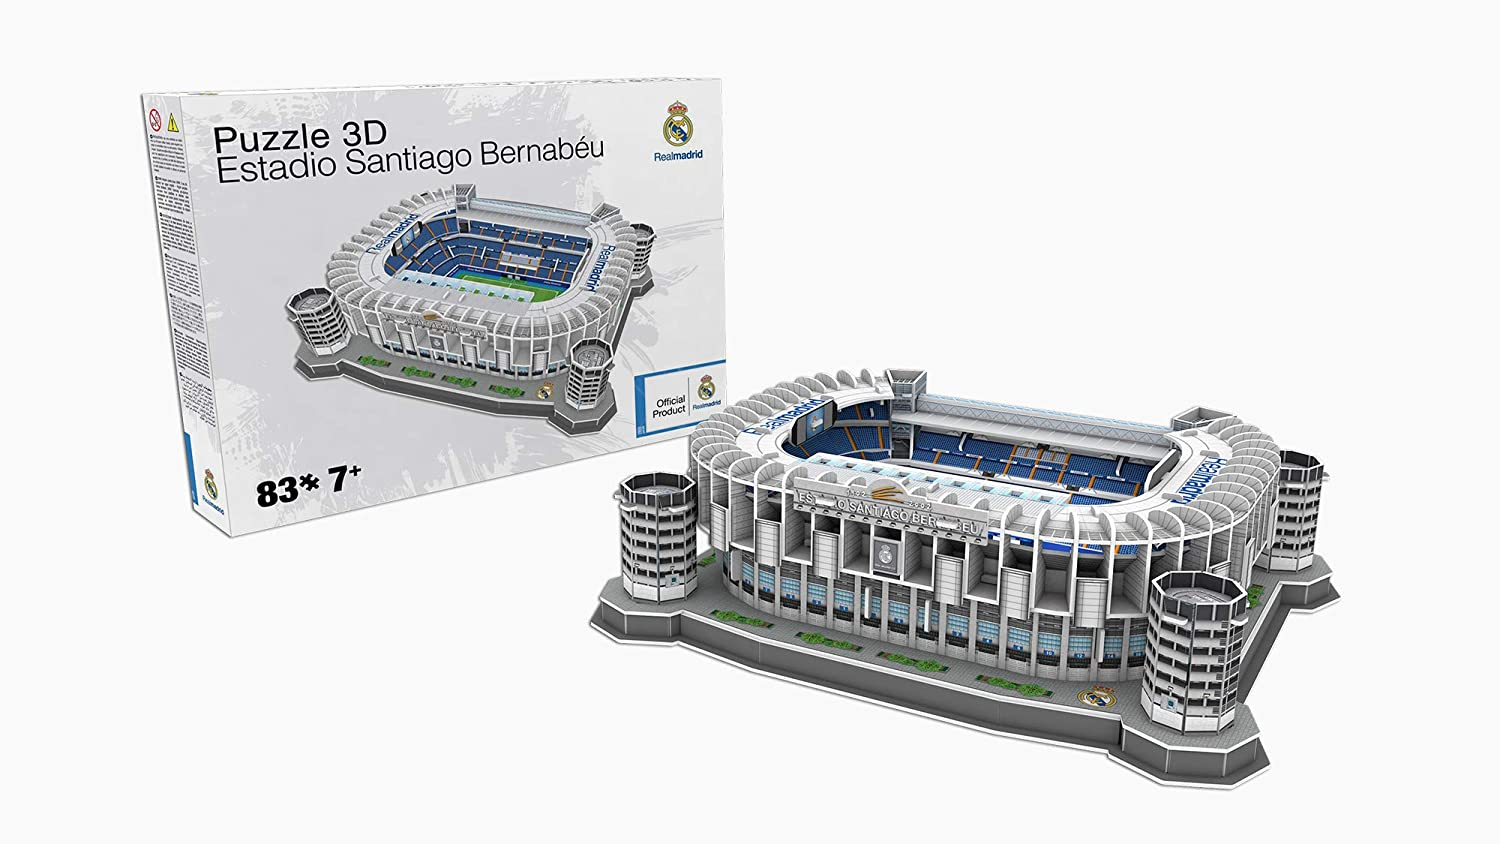 REAL MADRID- Nanostad, Puzzle 3D Estadio Santiago Bernabéu Standard (34451), (Kick Off Games 1)